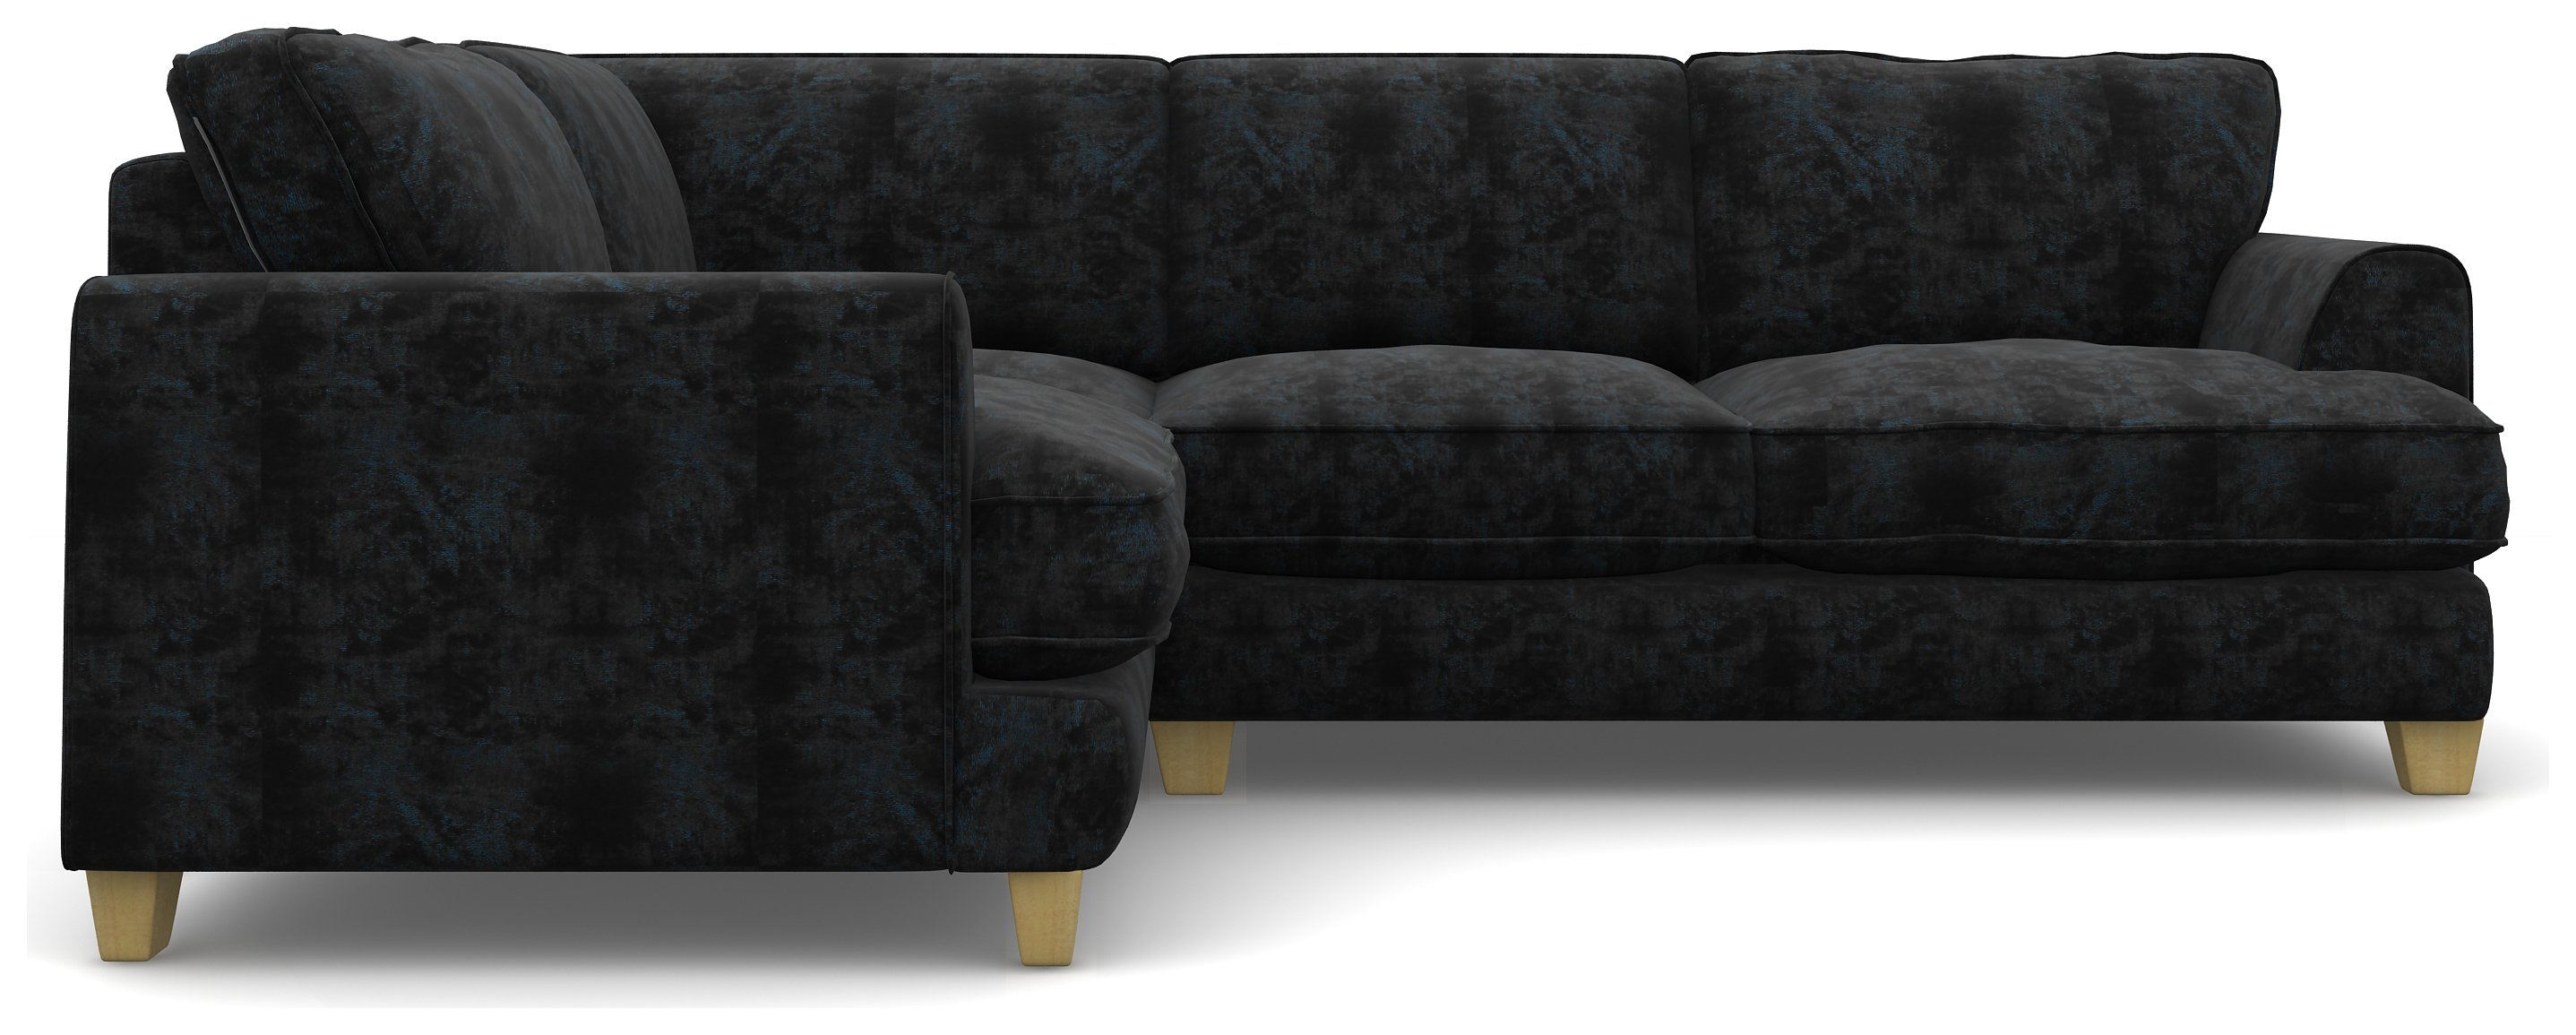 Create your own Heart of House Hampstead Fabric Left Corner Sofa - Black.